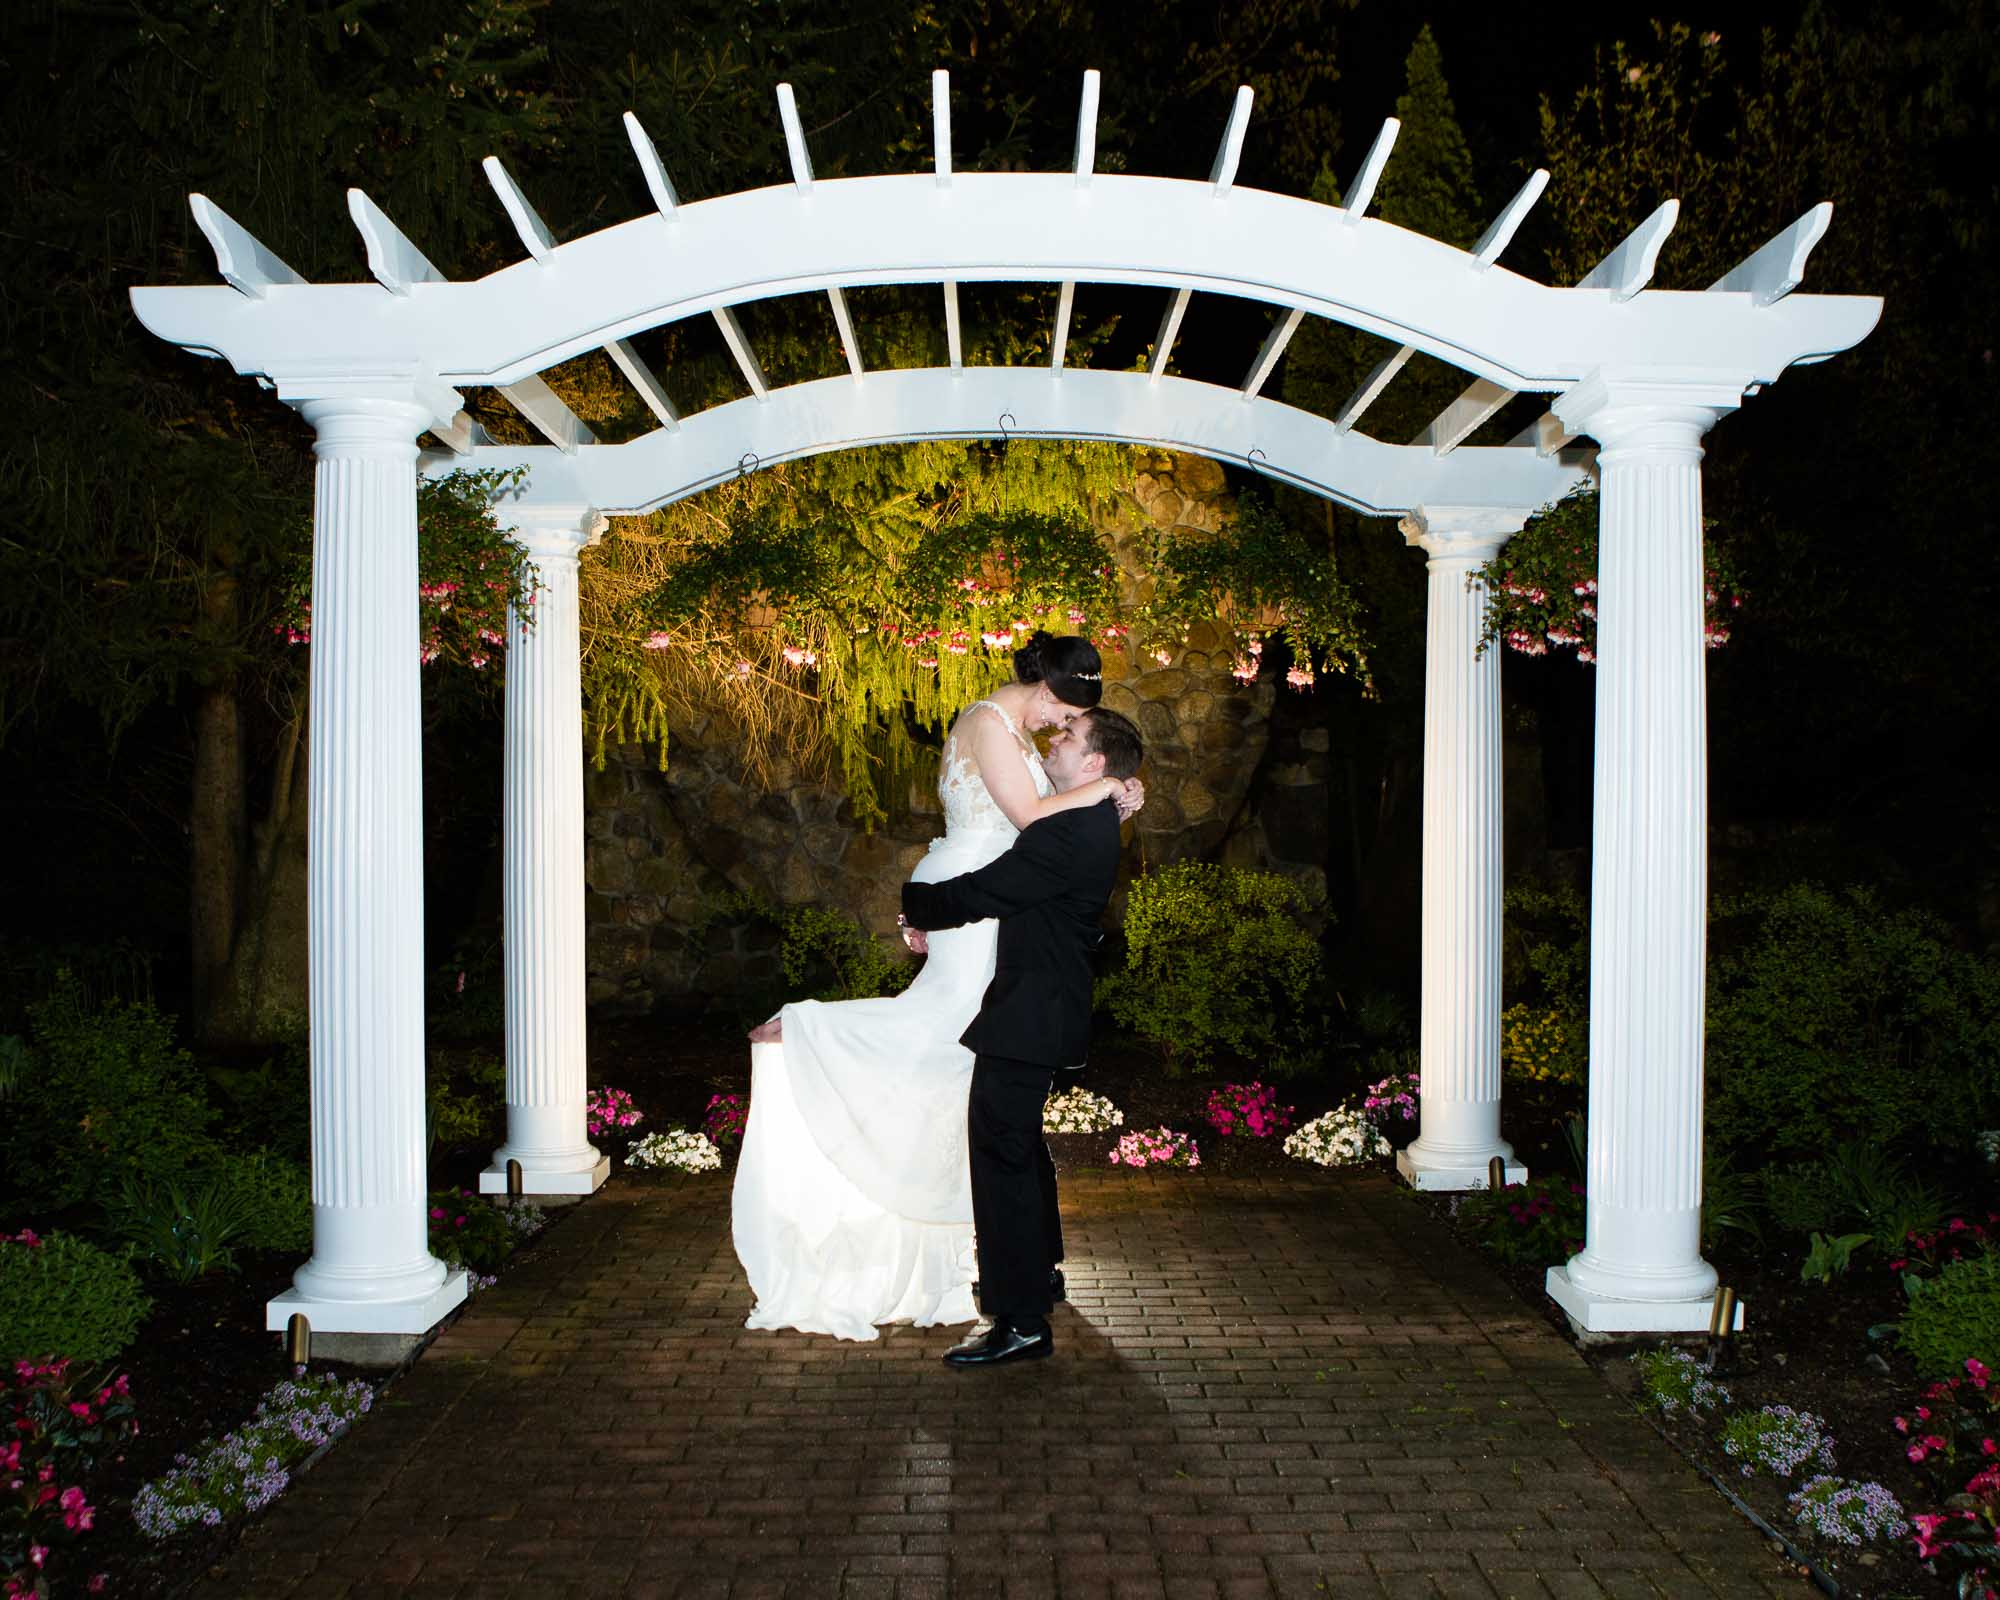 Kayla and Bryan's Wedding at Andover Country Club